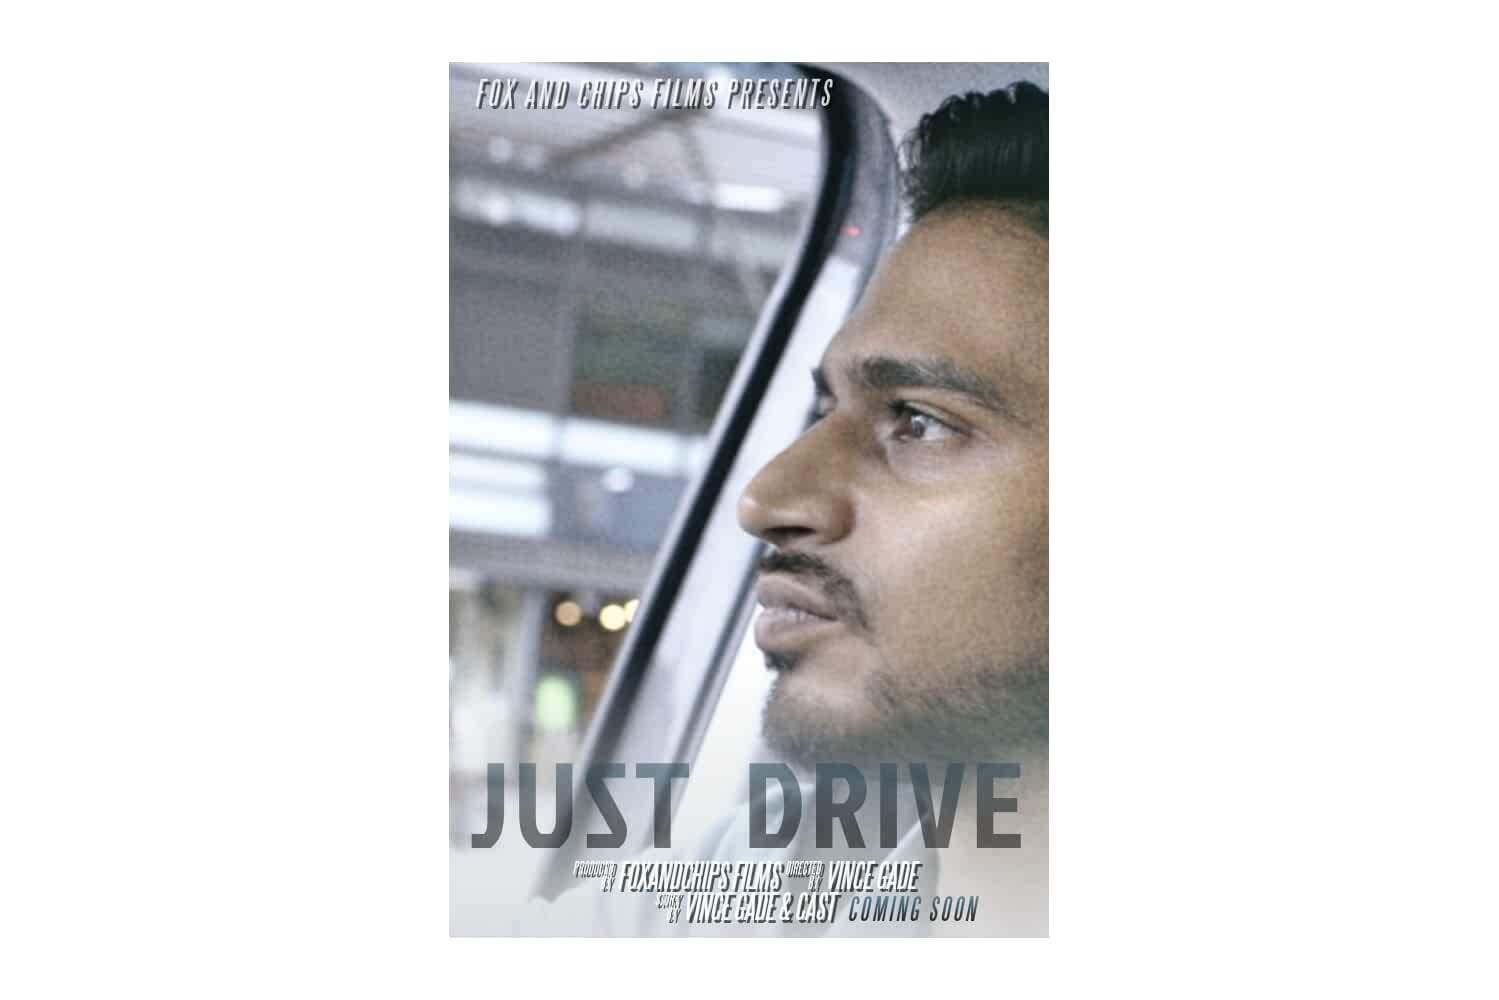 JUST DRIVE (2018)